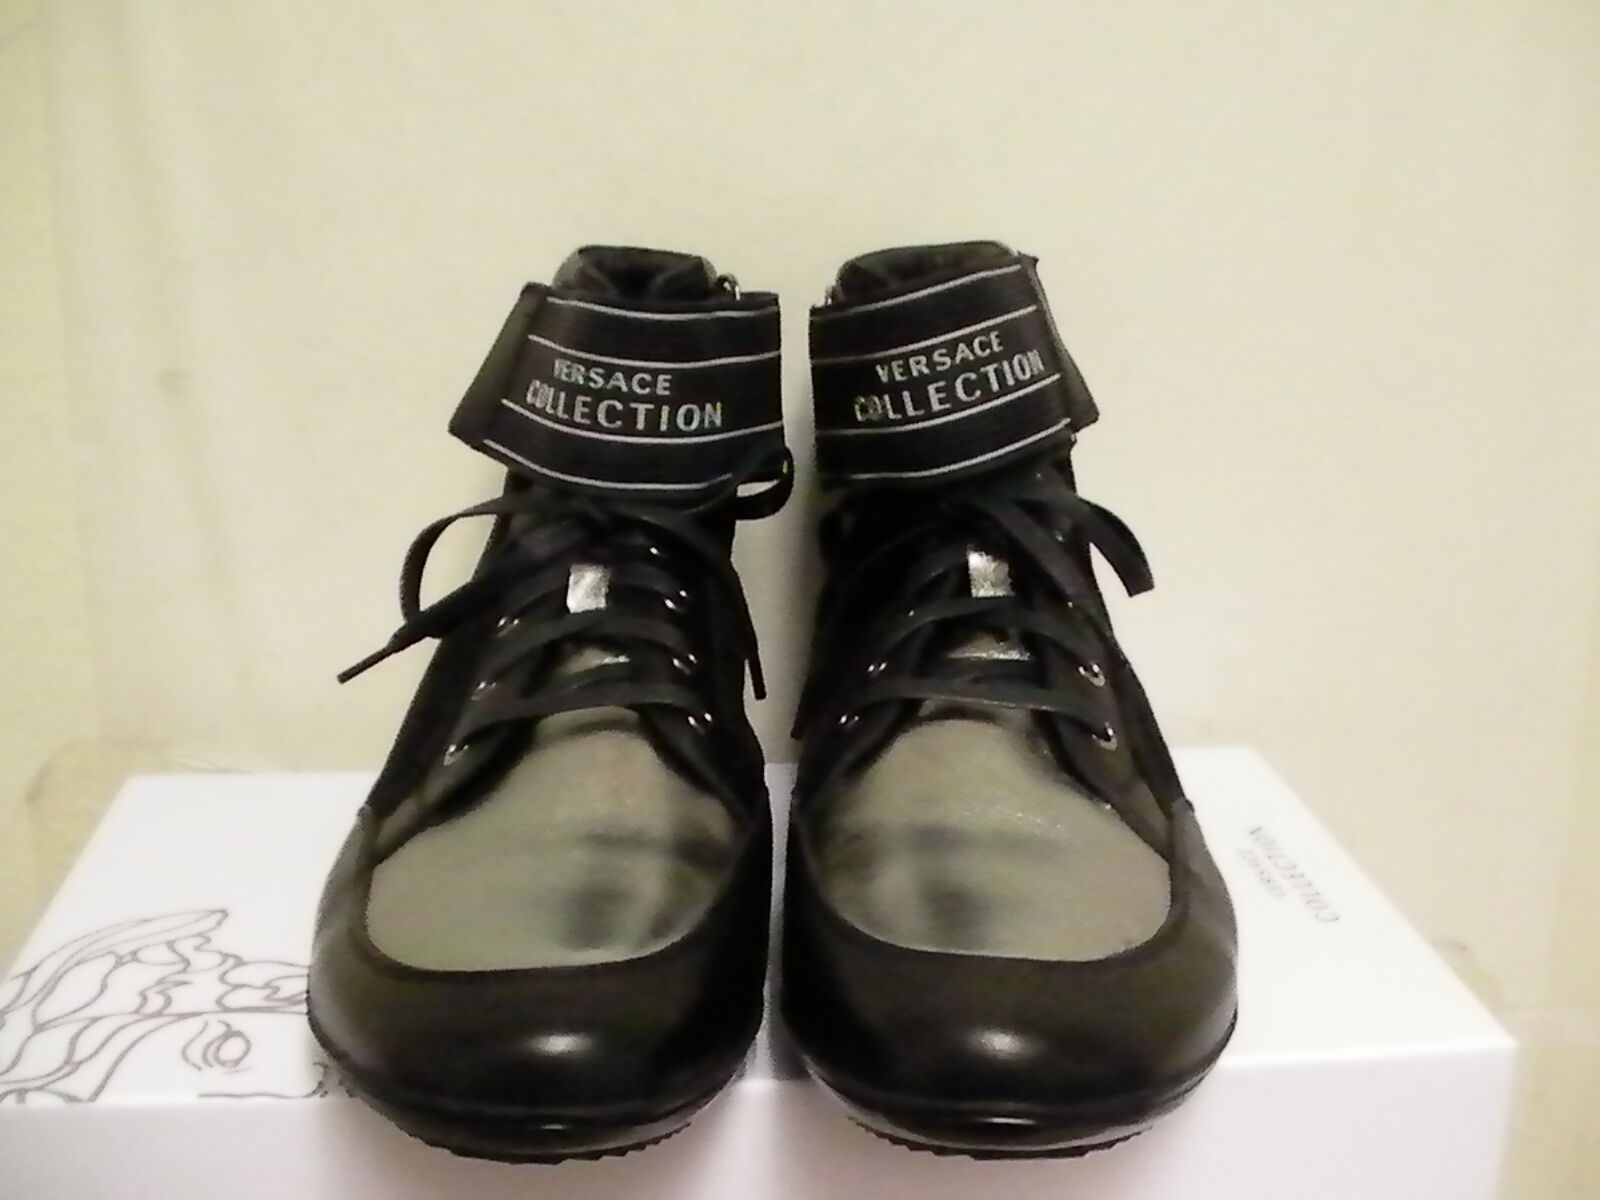 Versace collection men scarpe casual High Dimensione 44 euro new with box